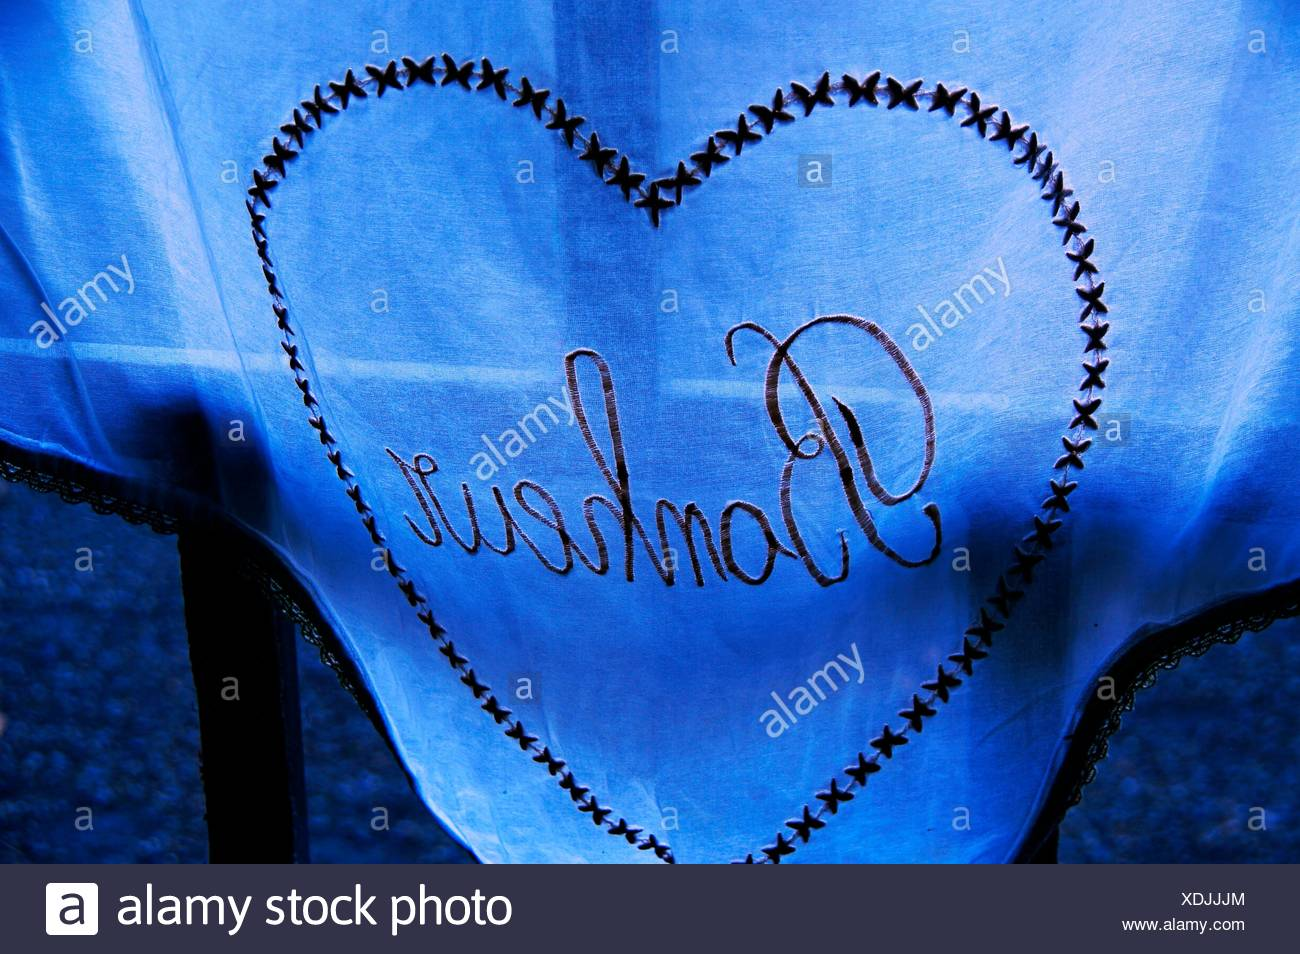 ´Bonheur´ (happiness) on a curtain at Panjas, Gers, Midi-Pyrenees, France - Stock Image